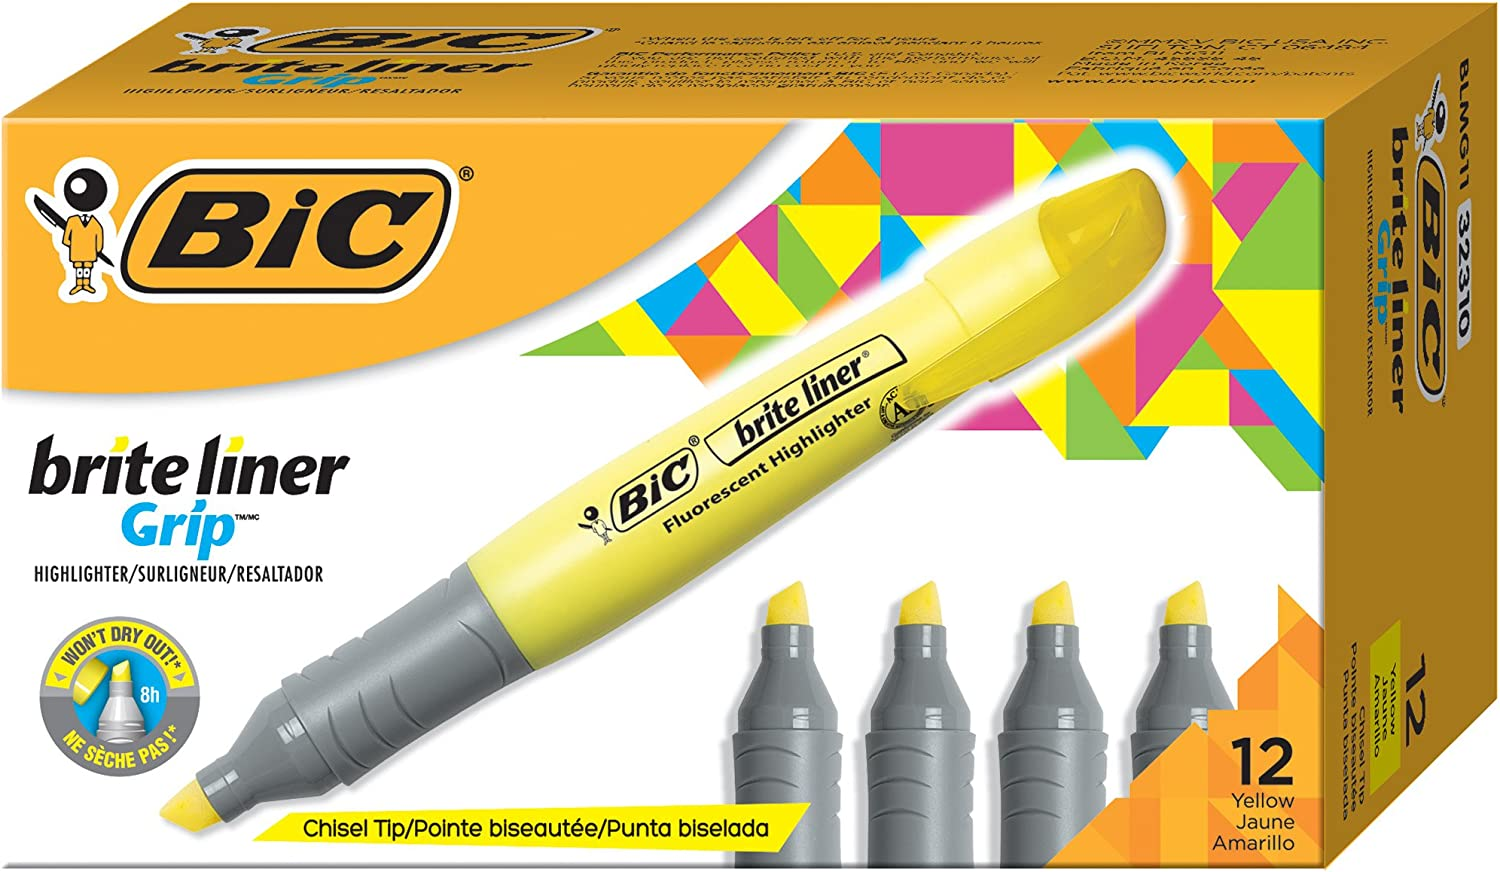 BIC Brite Liner Grip Highlighter, Tank, Chisel Tip, Yellow, 12-Count